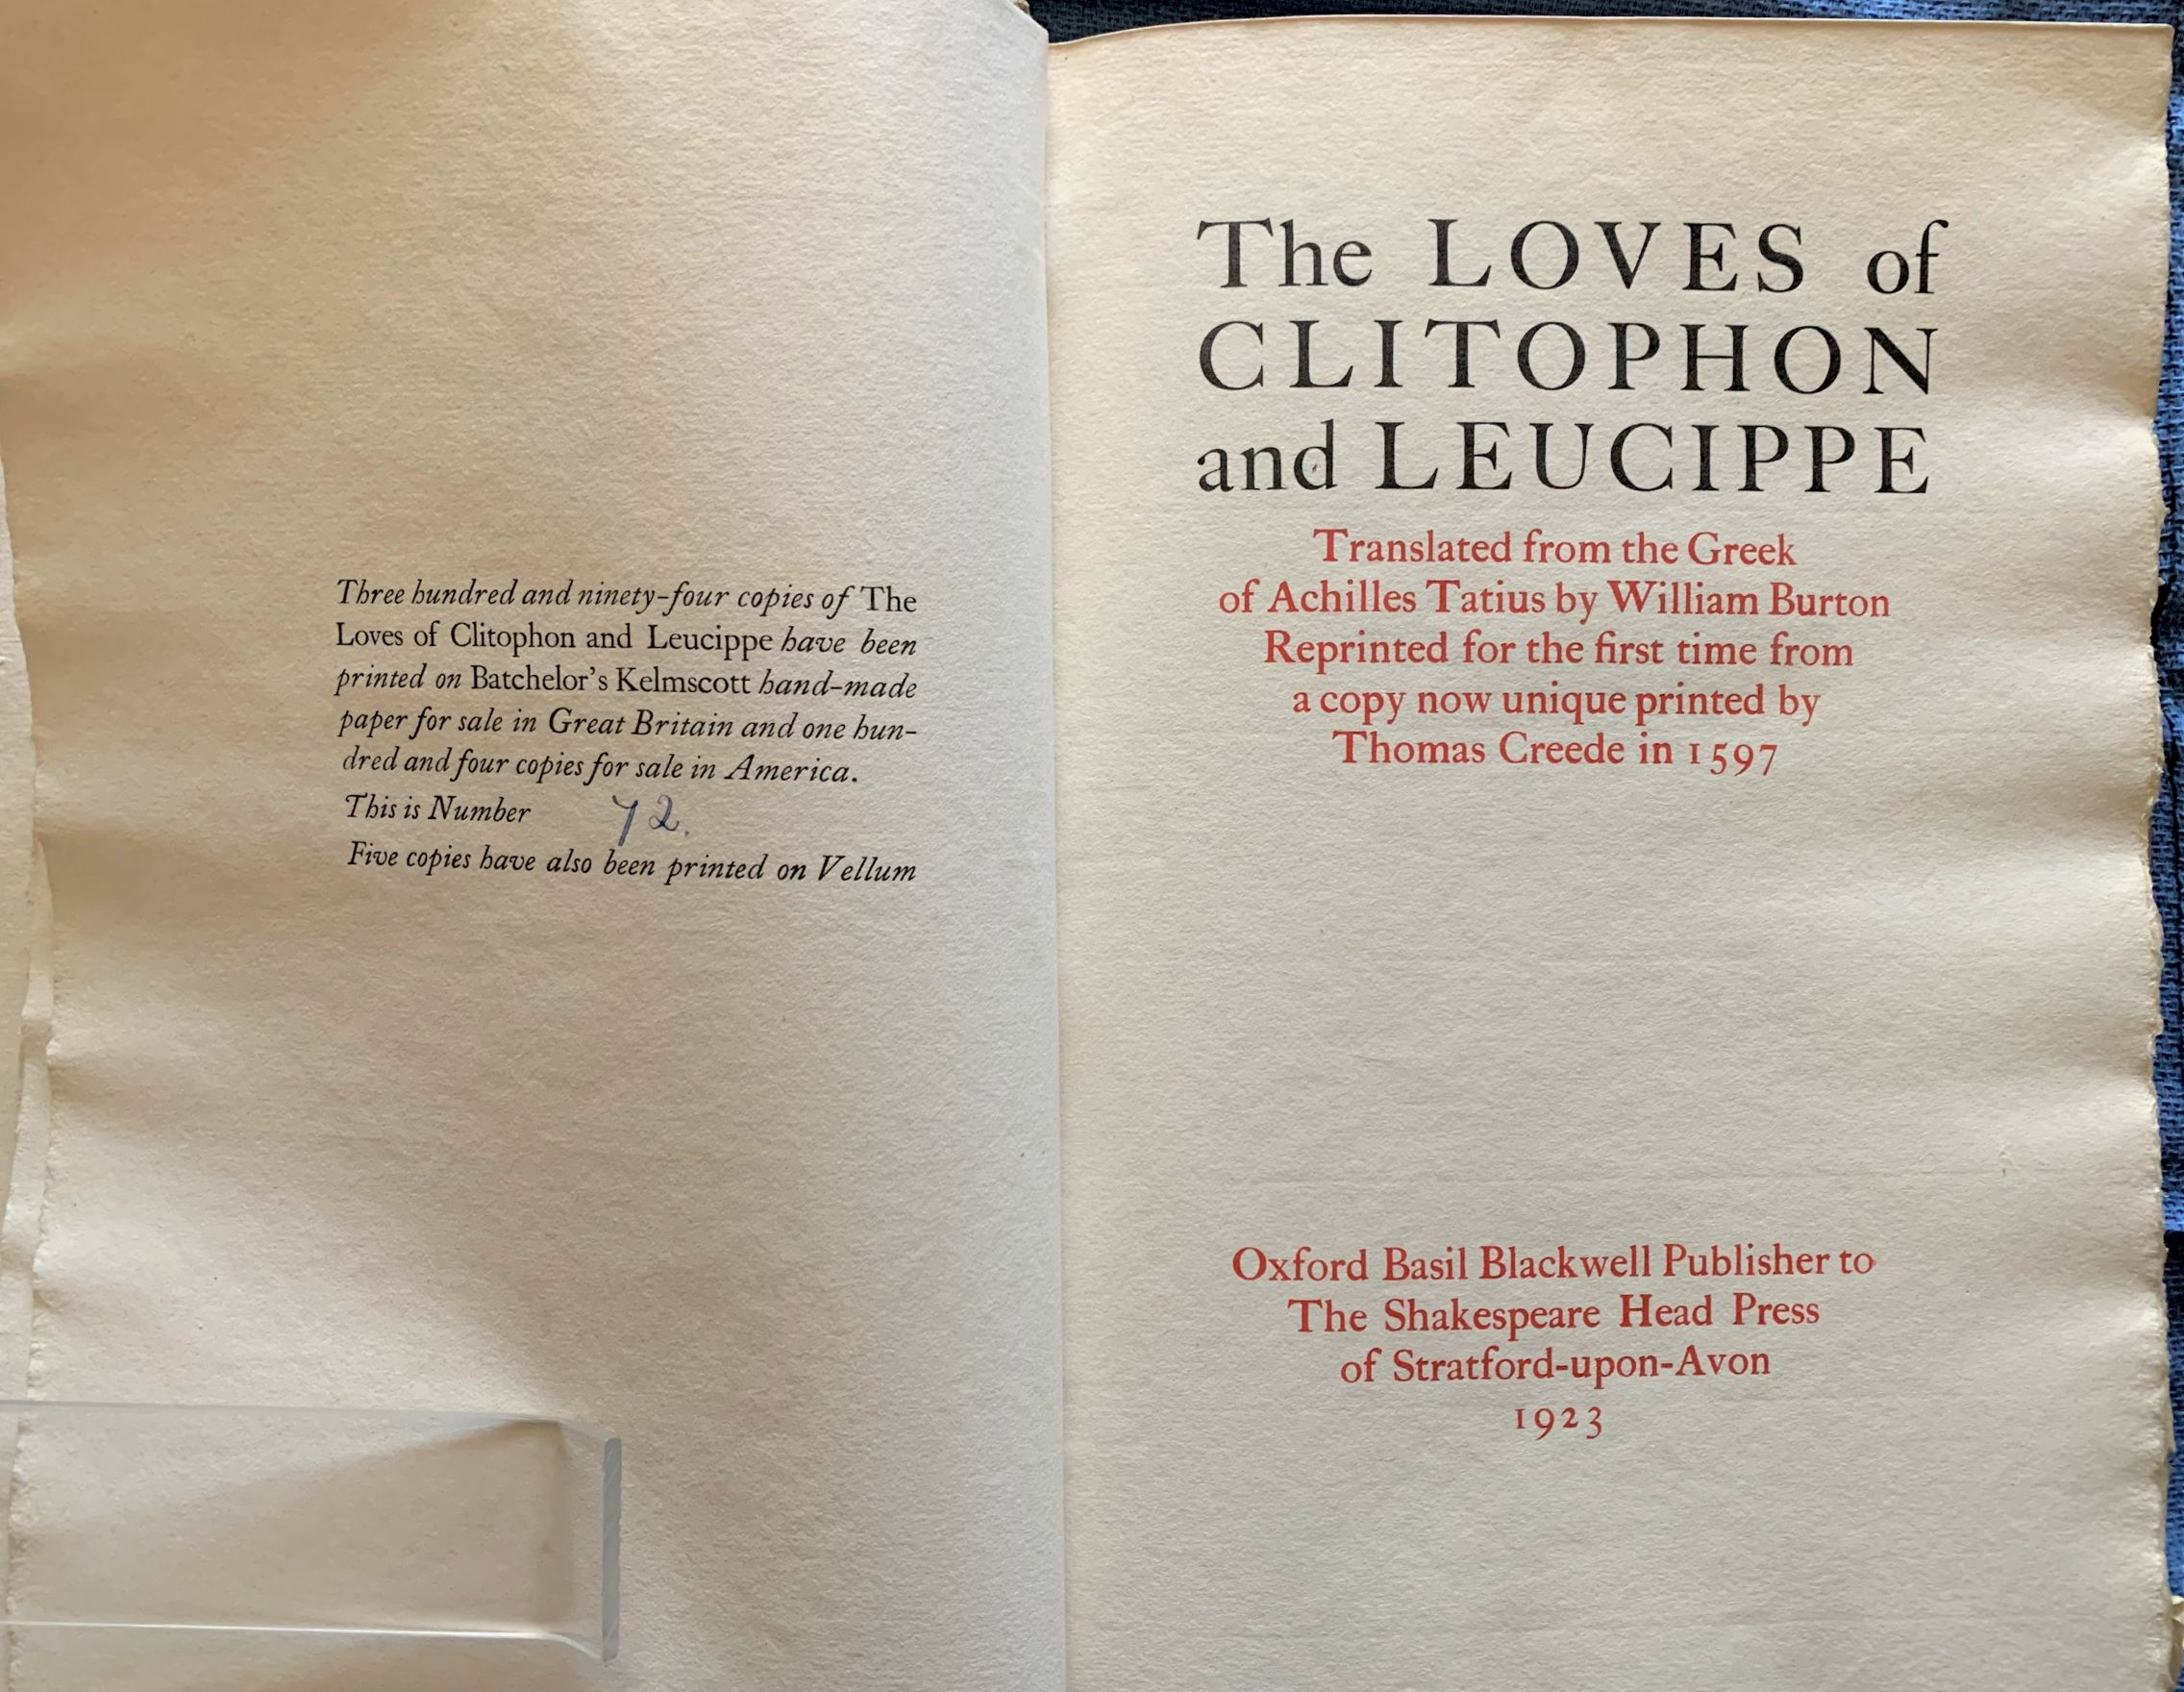 Image for The Loves of Clitophon and Leucippe. Translated from the Greek by William Burton. Reprinted for the first time from a copy now unique printed by Thomas Creede in 1597.